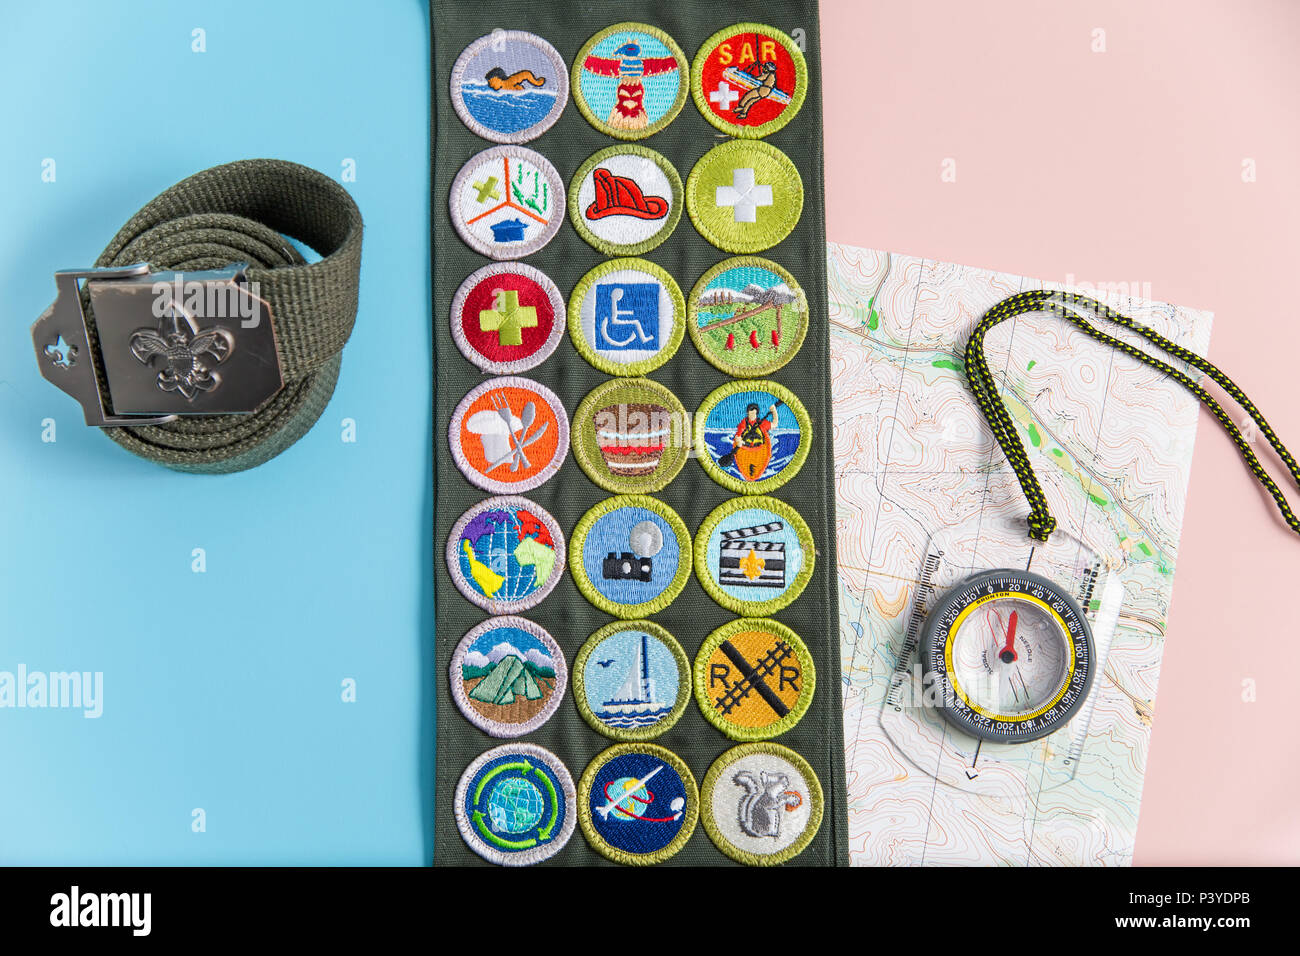 SAINT LOUIS, UNITED STATES - MAY 3, 2018:  Boy Scouts of America (BSA) merit badge sash, belt, compass, and map on pink and blue background as BSA wel - Stock Image